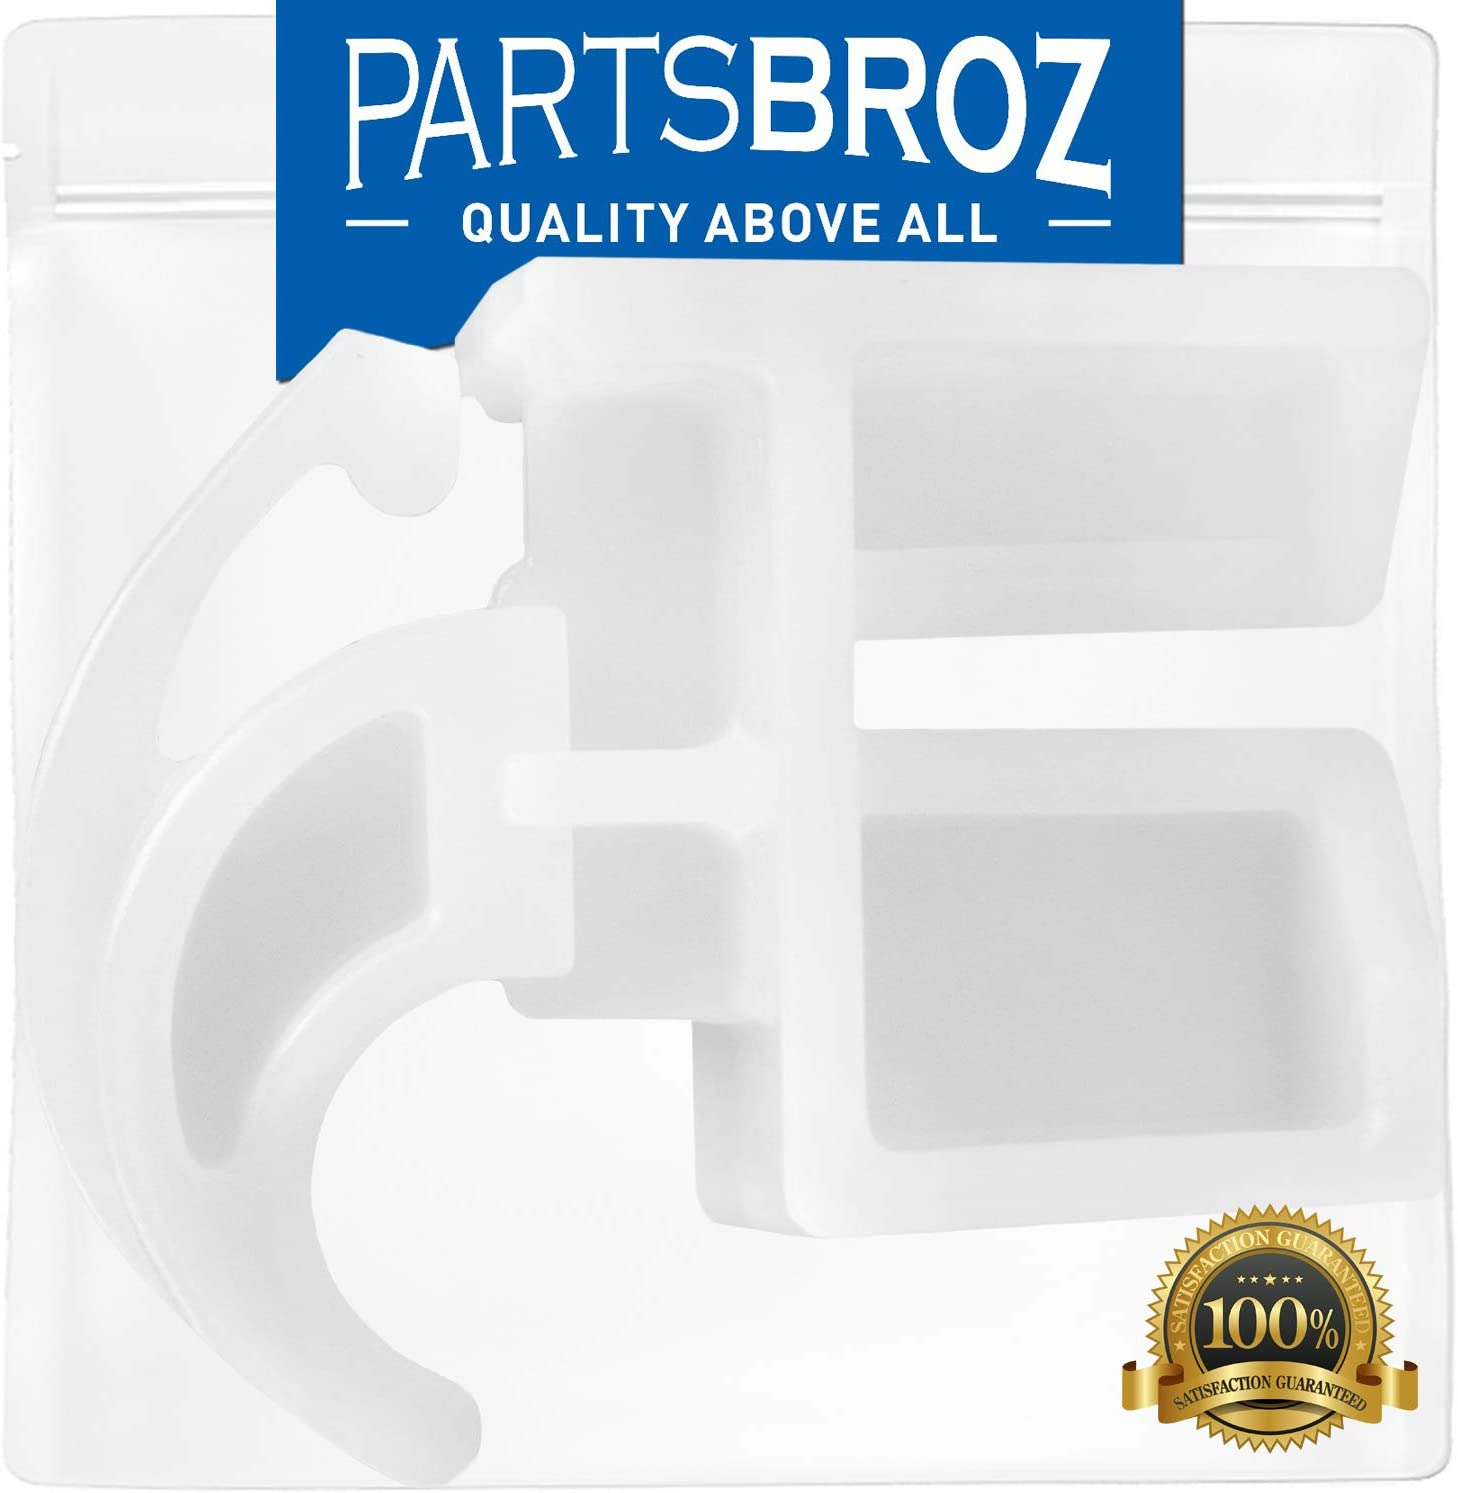 3051163 Rear Drawer Glide for Frigidaire Ovens by PartsBroz - Replaces Part Numbers AP2121518, 08067822, 3012699, 496, AH434227, EA434227, PS434227